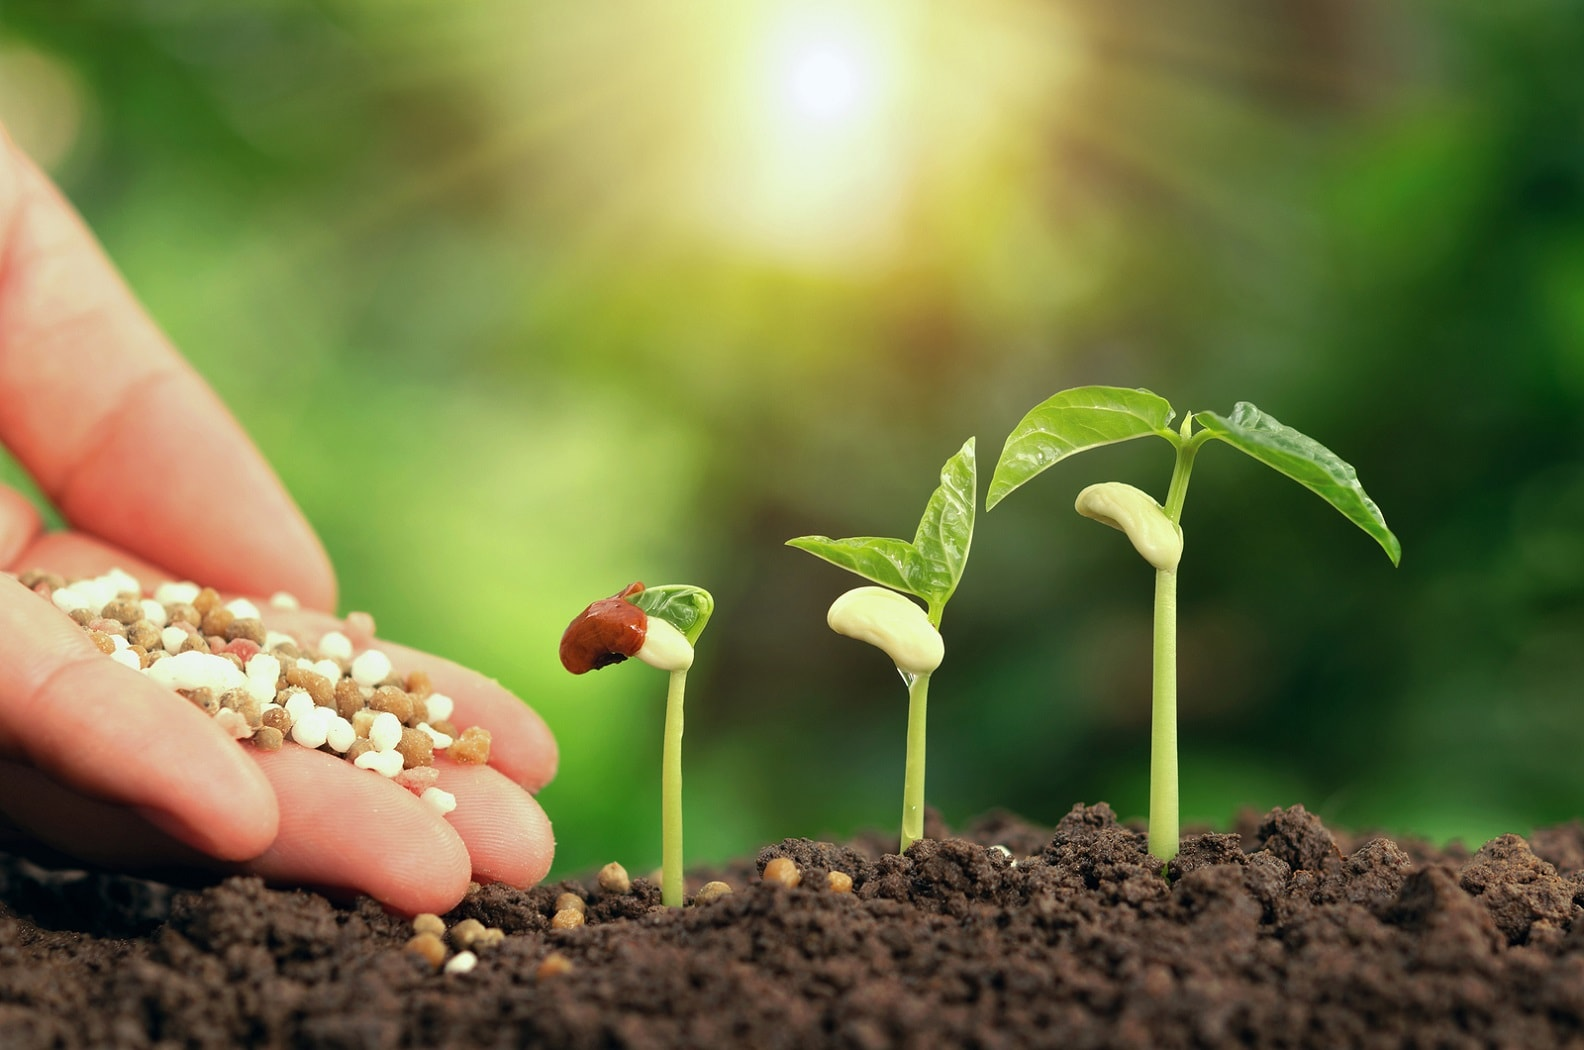 Common mistakes made by beginners using fertilizers